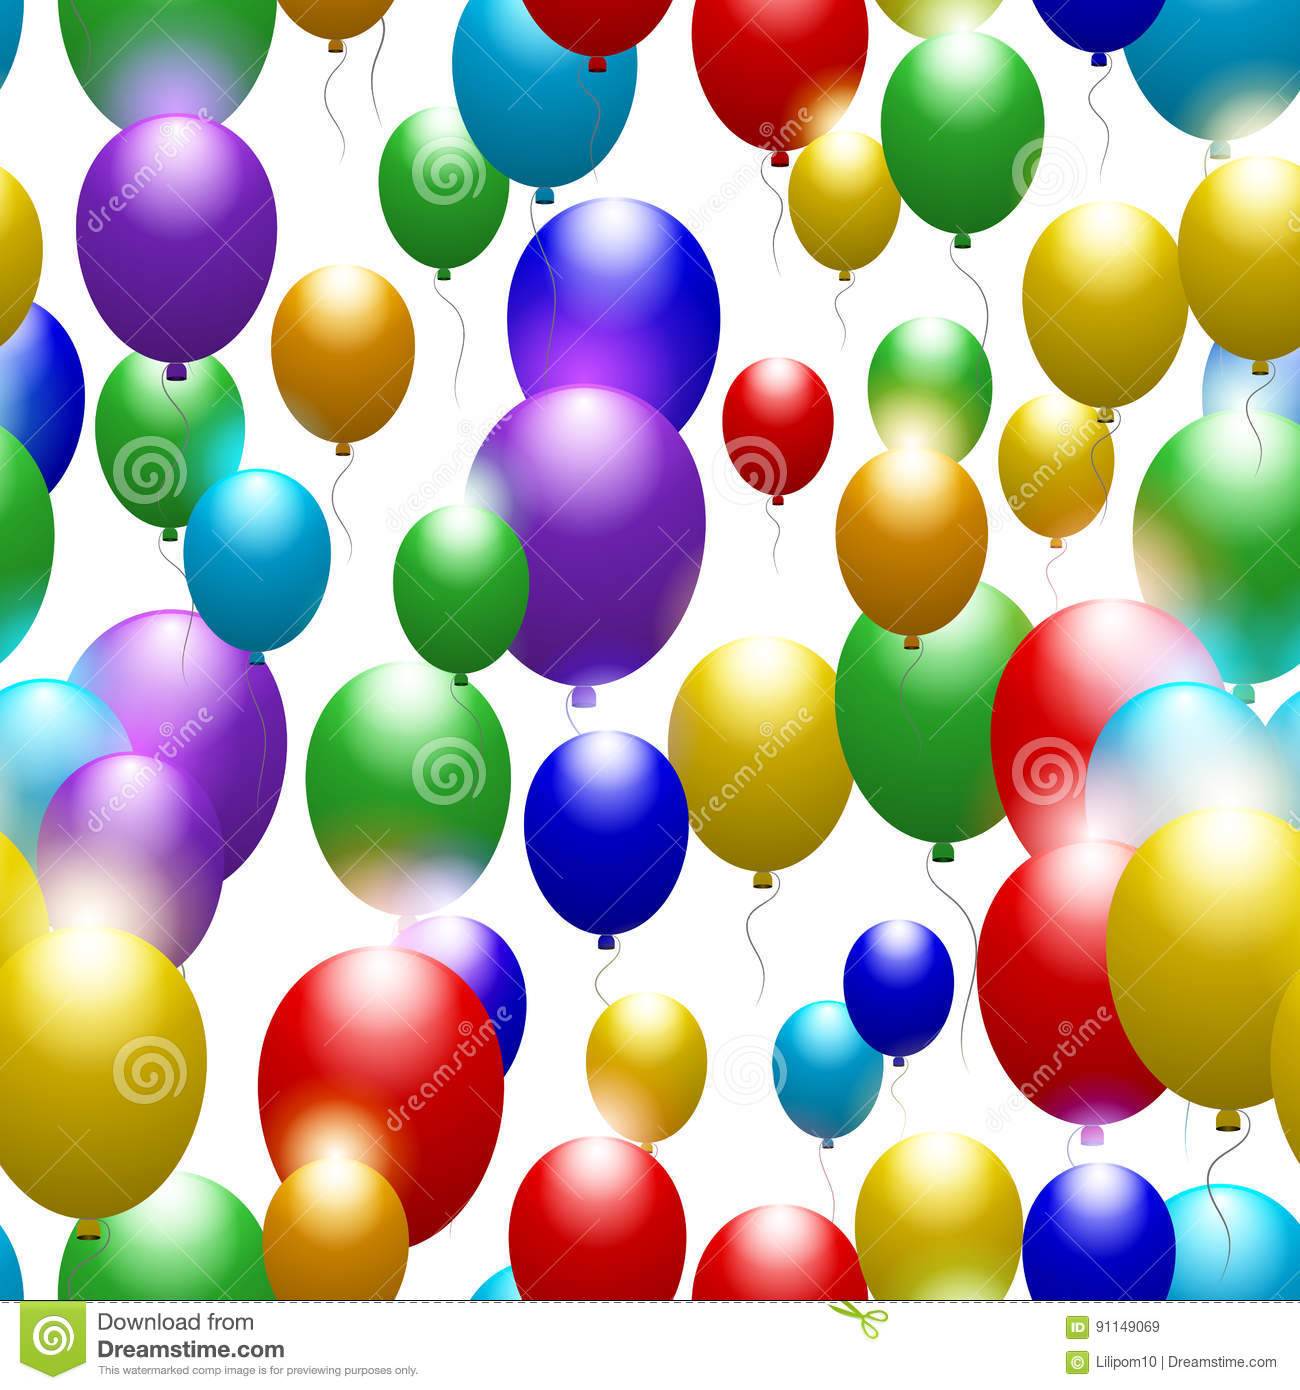 balloons of all colors of the rainbow seamless festive pattern